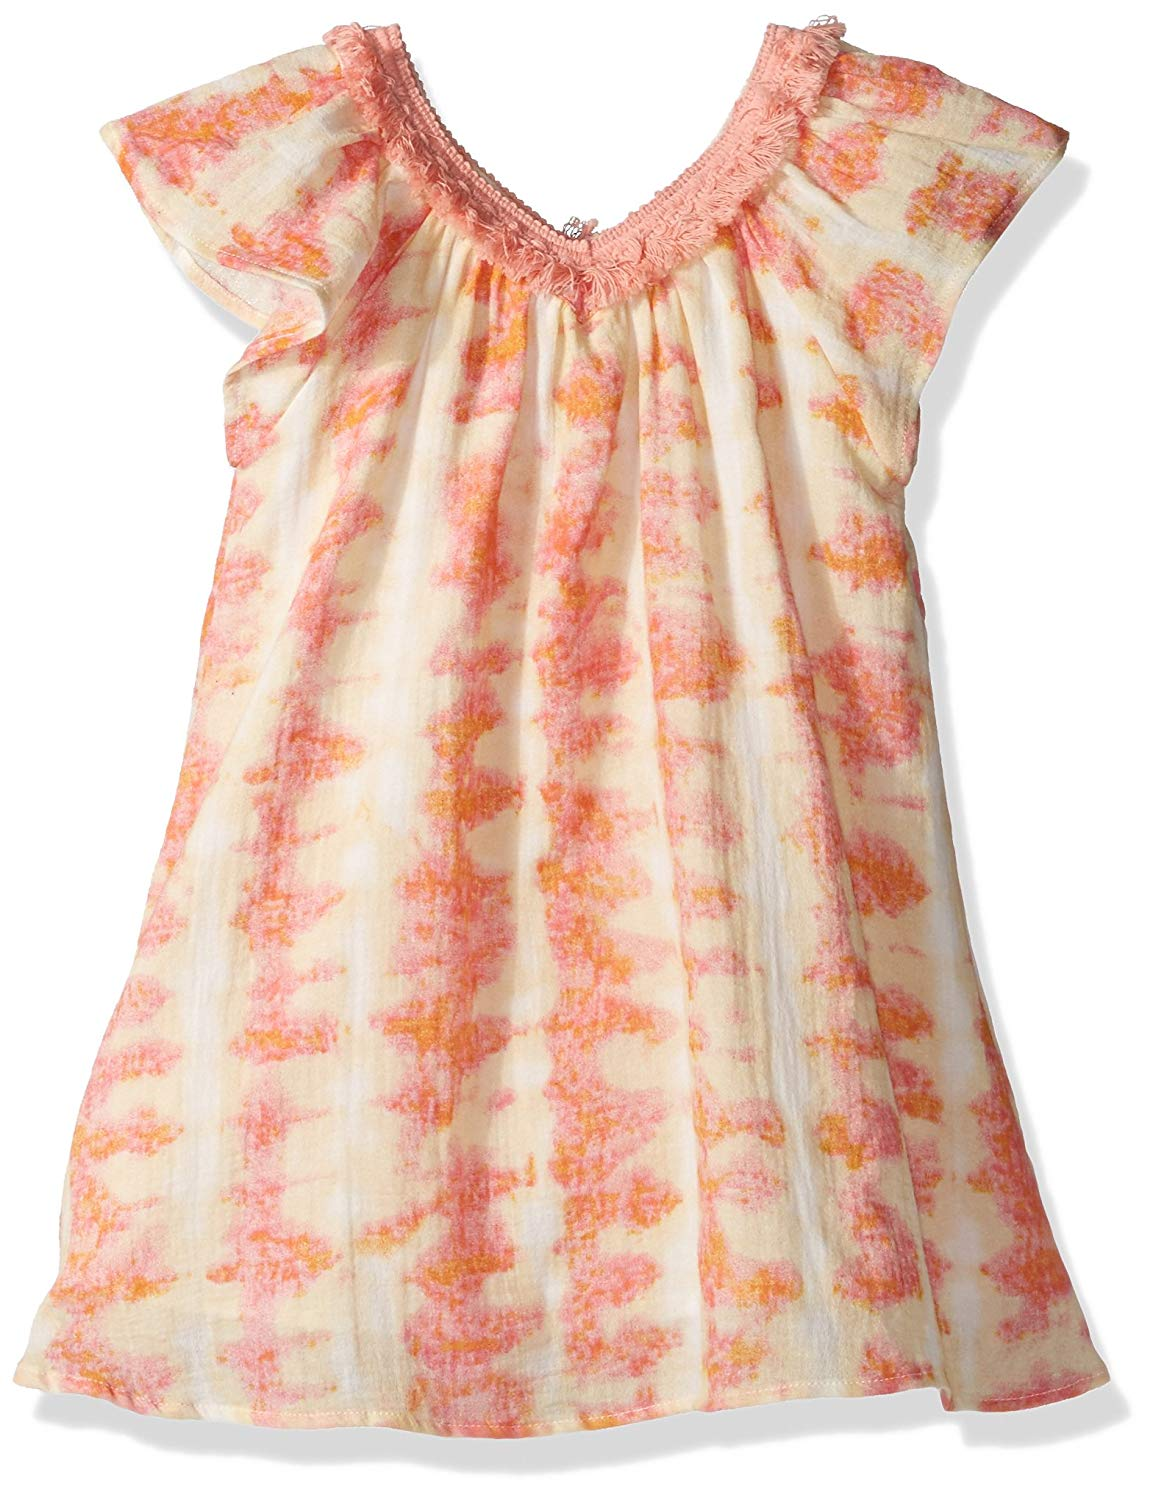 Jessica Simpson Toddler Girls' Tie-Dye Dress